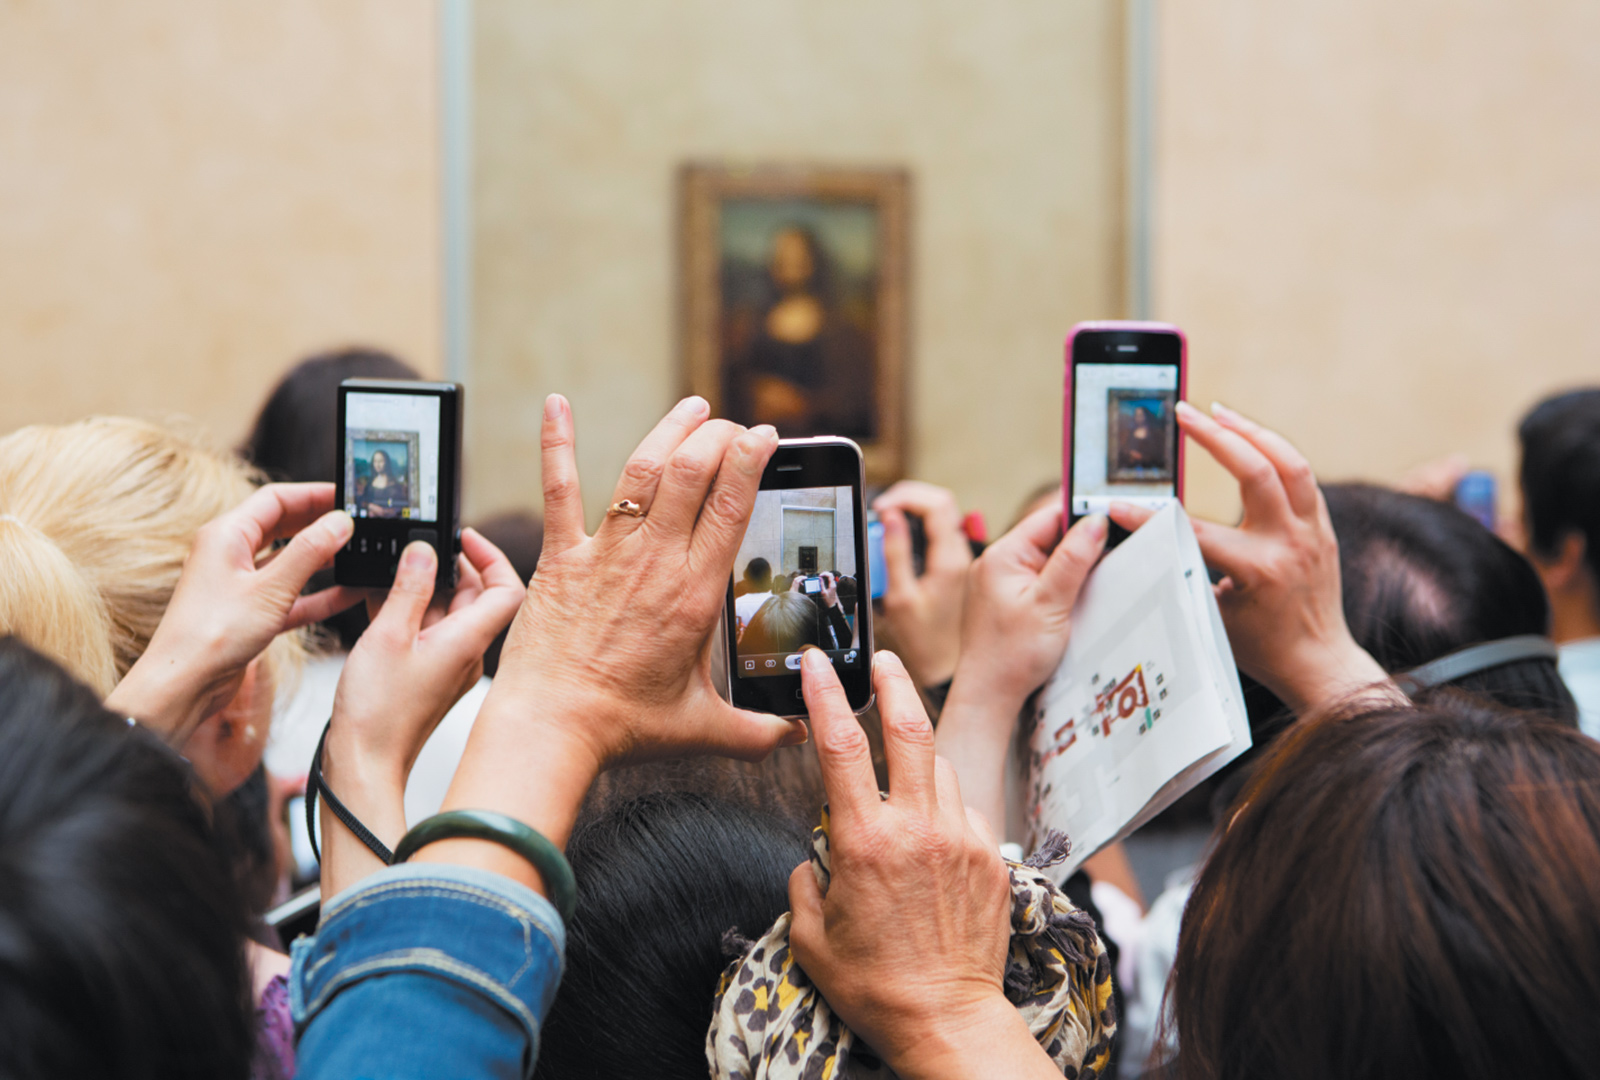 Museumgoers taking photographs of the Mona Lisa at the Louvre, Paris, 2012